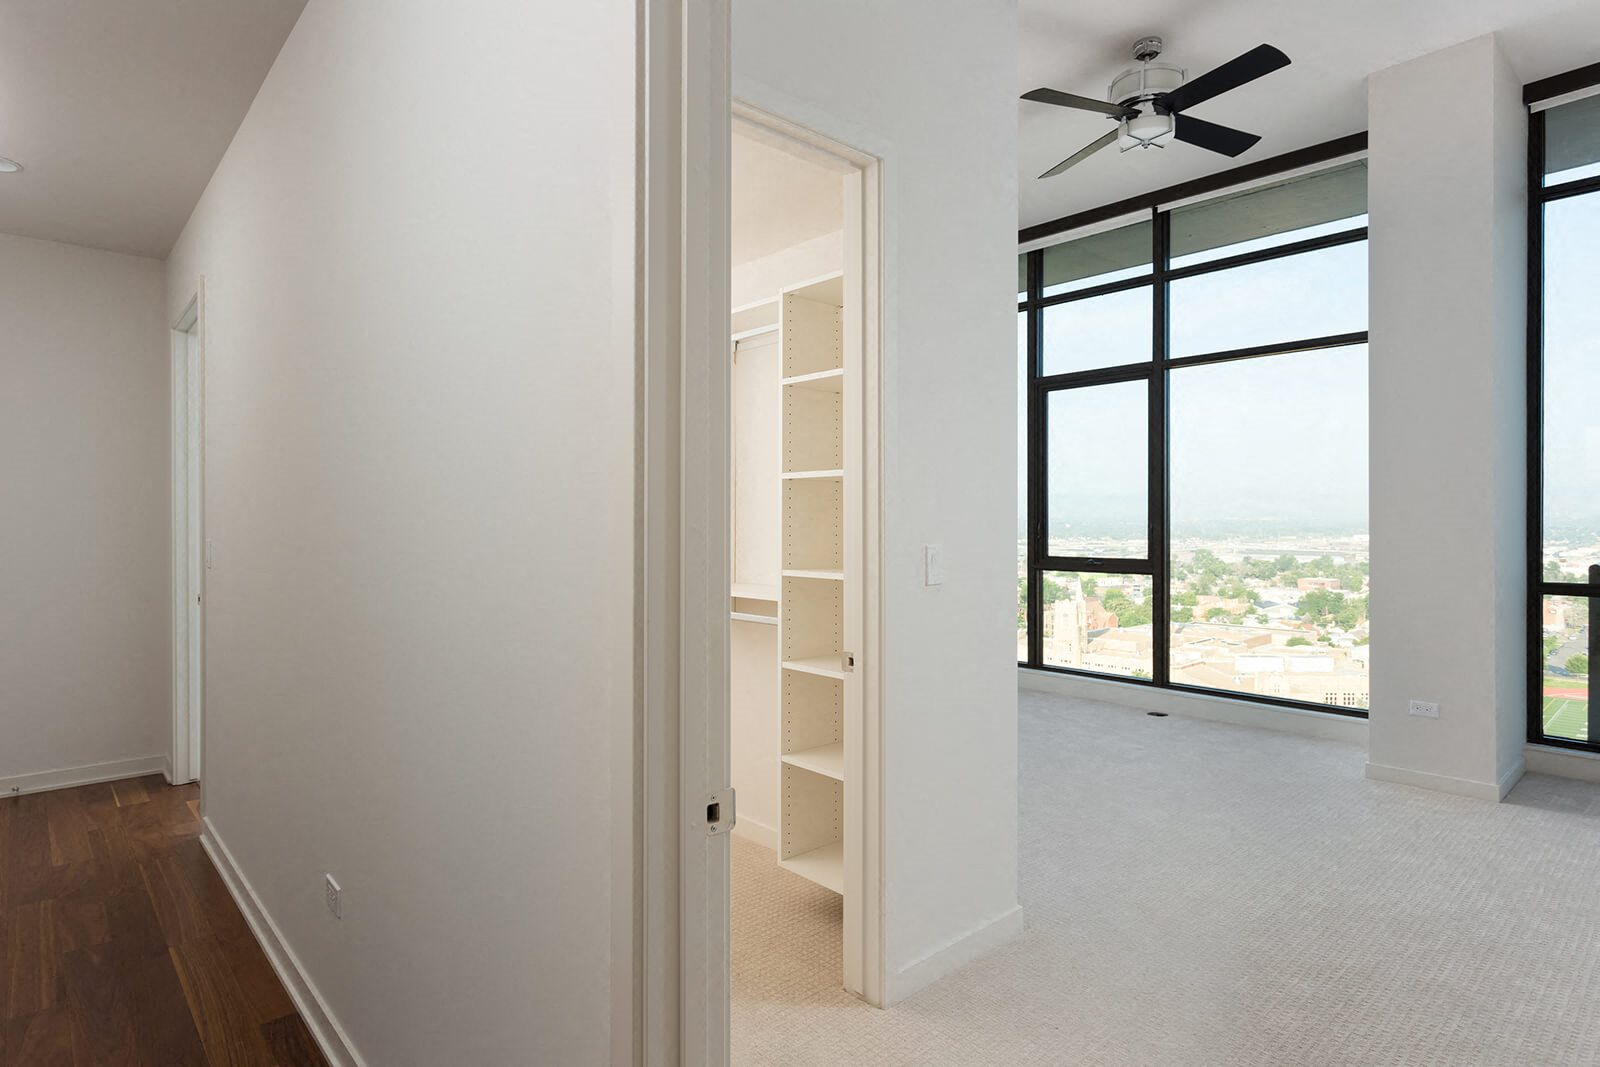 Walk-In Closets with Built-In Shelving at 1000 Speer by Windsor, 1000 Speer Blvd., Denver